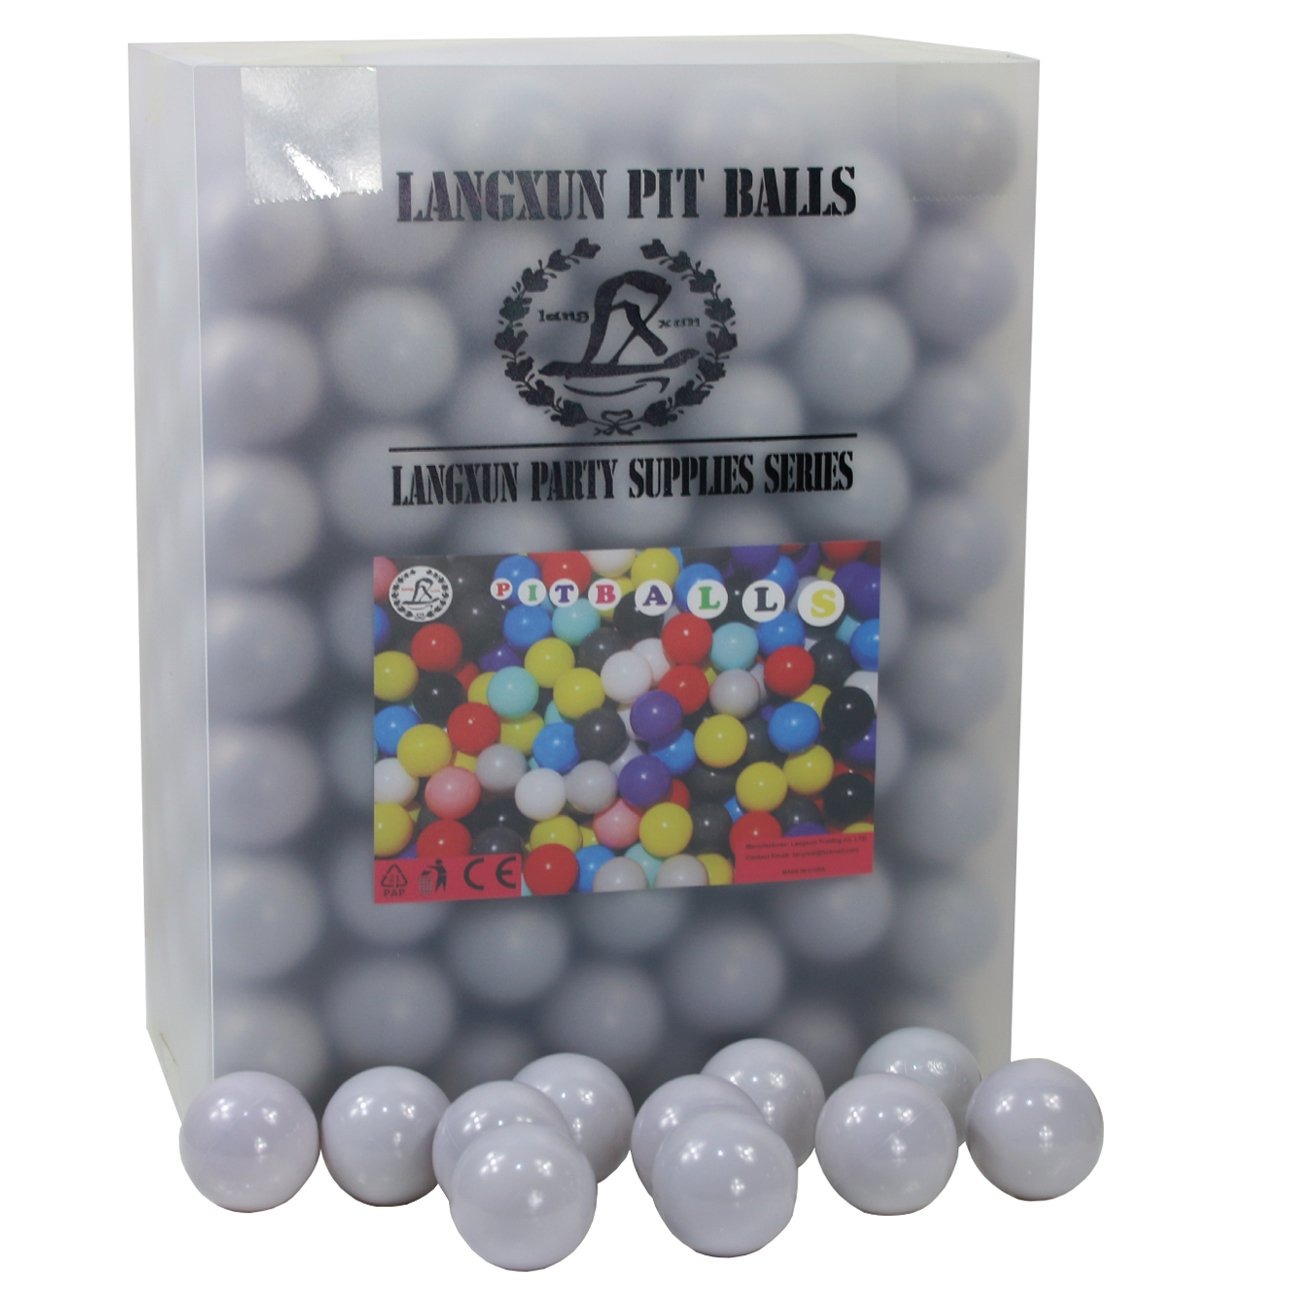 Langxun Pack of 350pcs Ball Pit Balls - Soft Plastic Play Balls for Toddlers for Toddler Ball Pit, Kiddie Pool, Party Decoration, Photo Booth Props, Wedding Decoration